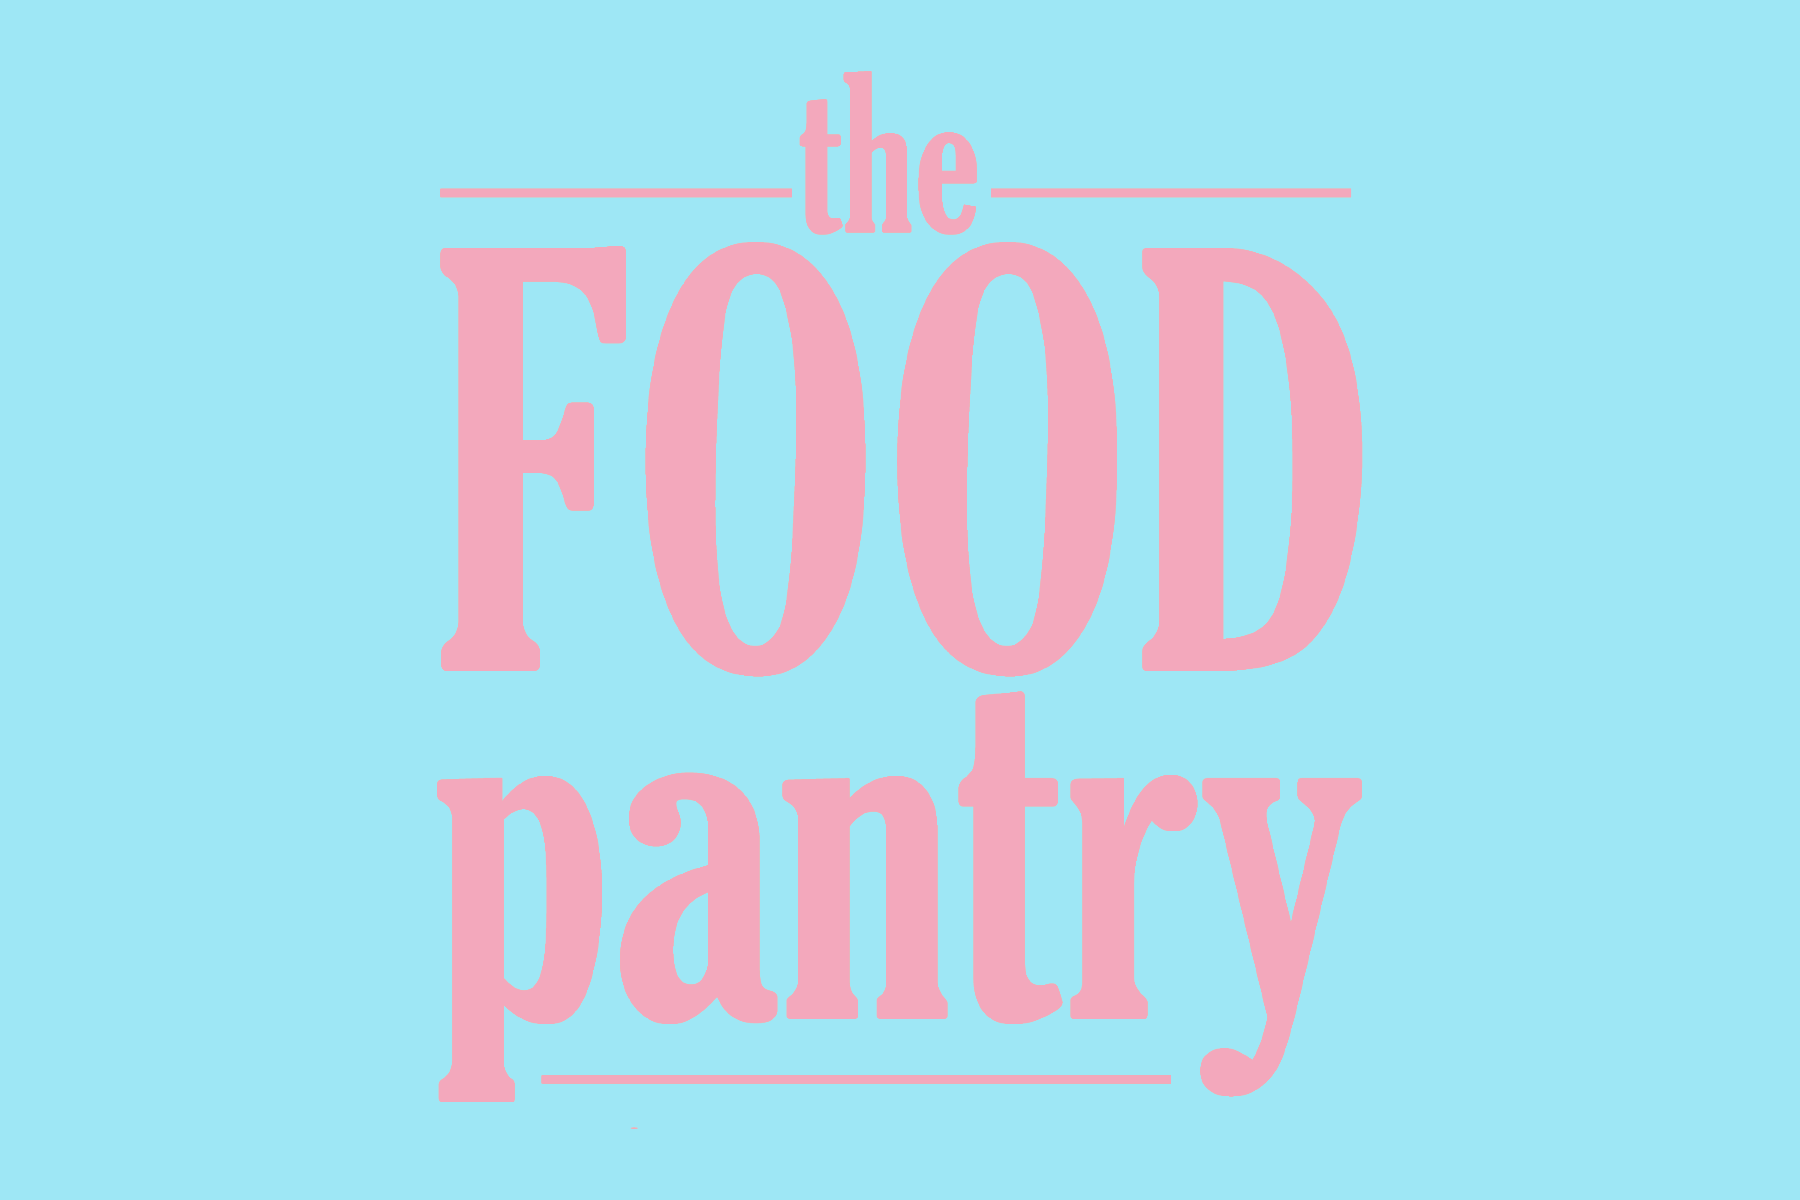 "Image of ""The Food Pantry"" written in stylized text."